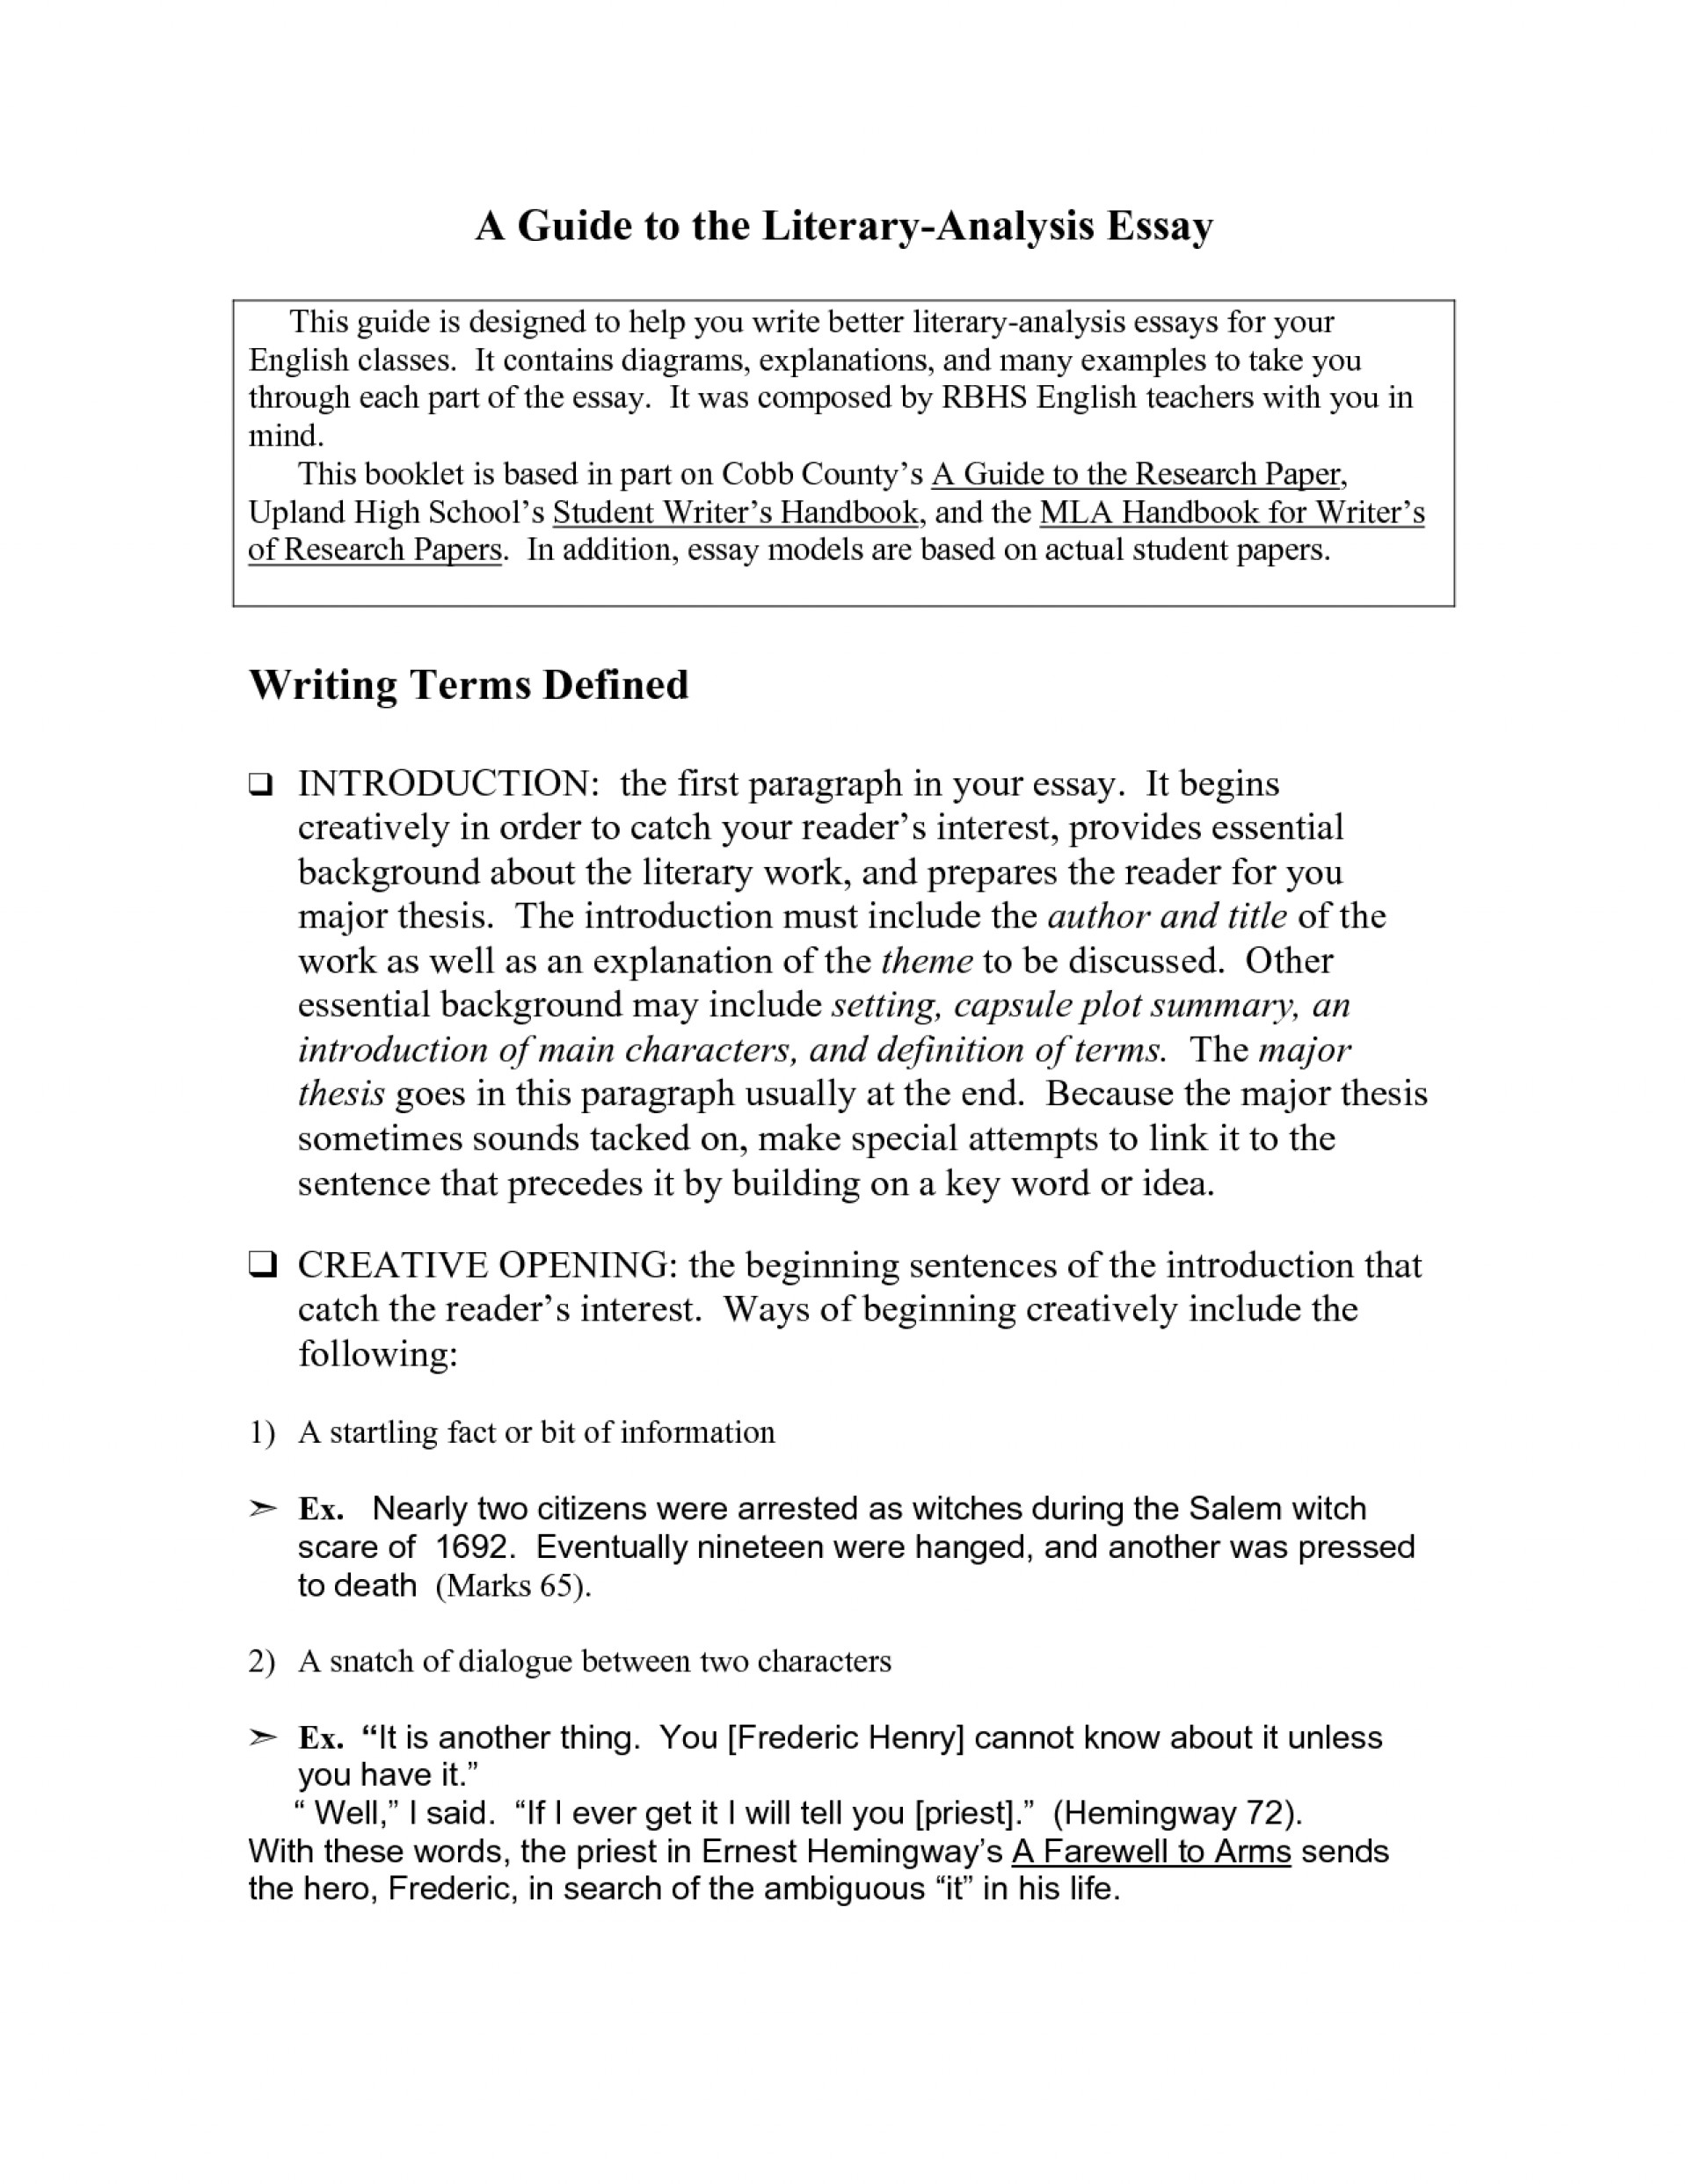 002 Critical Evaluation Essay Example Essays Examples L Frightening Review Of Journal Article Analysis Systematic Writing A 1920